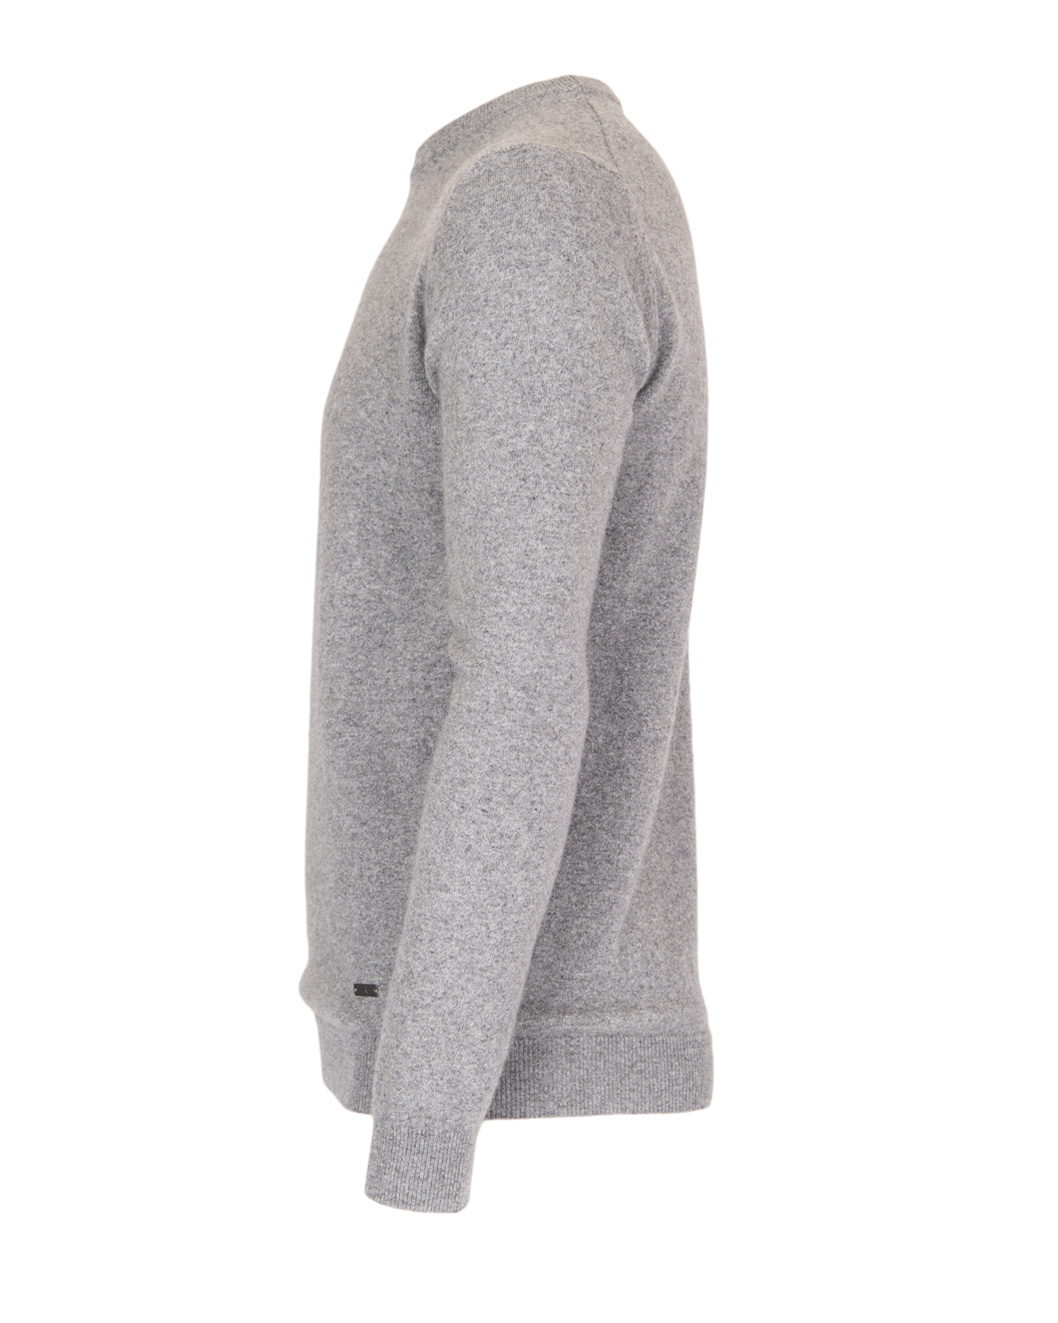 Sustainable pullover Headsail